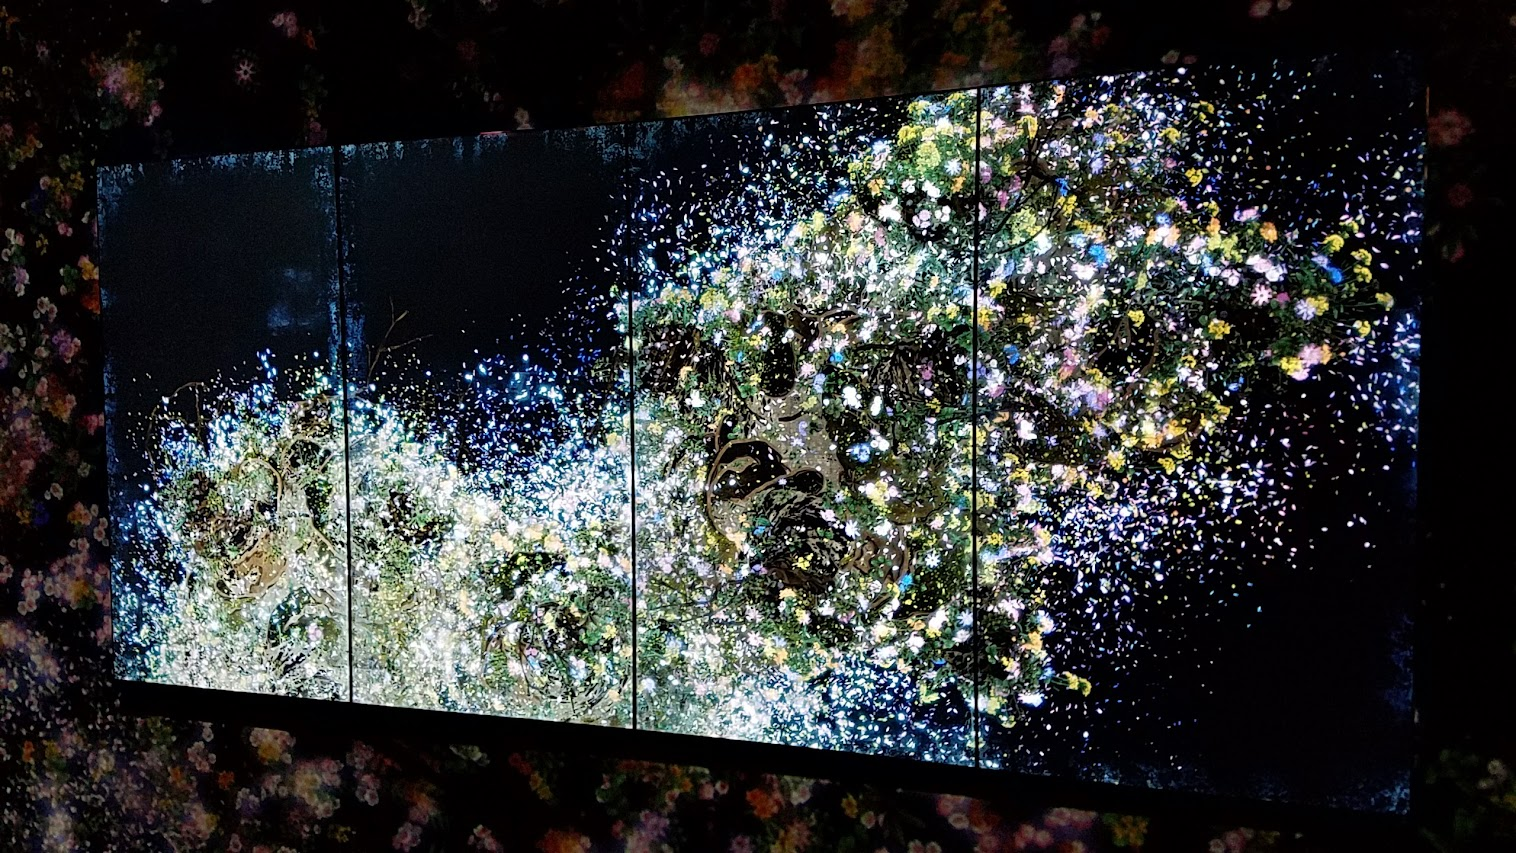 Ever Blossoming Life II - A Whole Year per Hour, Dark as part of Pace Art + Technology exhibit Living Digital Spaces and Future Parks. This is the TV screen inside the next room - it switches between Butterfly and Ever Blossoming. This artwork is in continuous change, over a period of one hour a seasonal year of flowers blossoms and scatters. Flowers are born, grow and blossom in profusion before the petals scatter, and the flowers wither and fade away. The cycle of birth and death repeats itself, continuing for eternity. The entire work changes continuously. The same state will never be repeated.